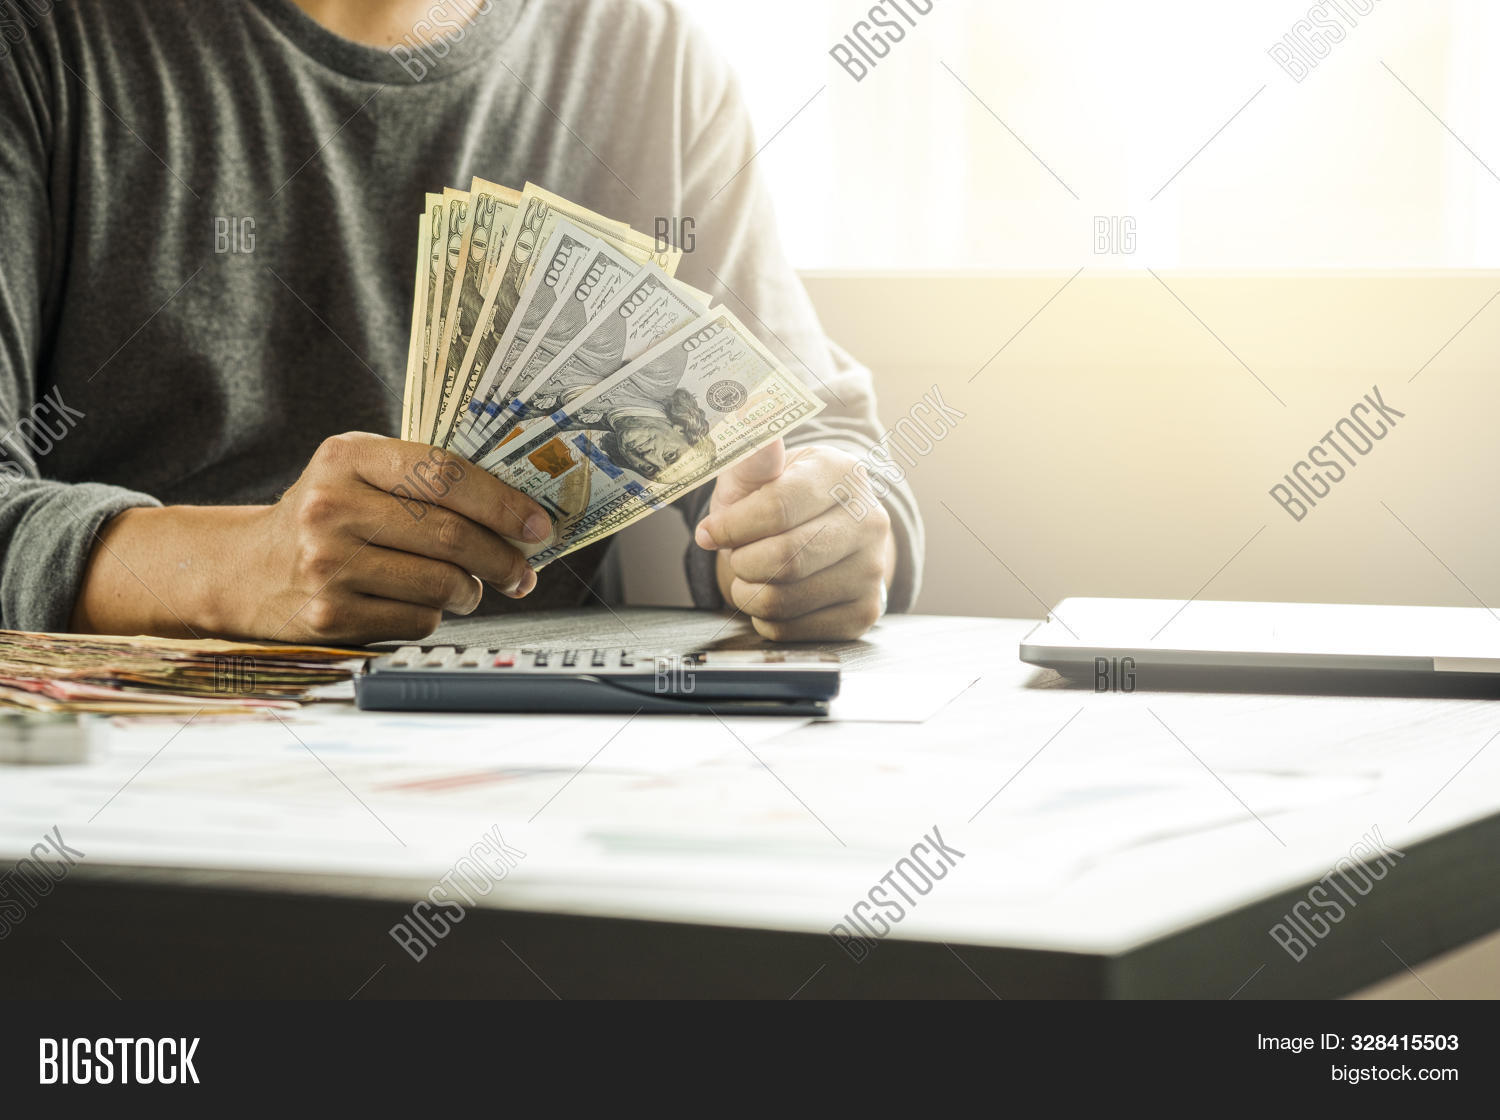 america,banking,banknote,bill,bonus,borrow,bribery,budget,business,businessman,buy,capital,cash,commerce,company,cost,credit,currency,dollar,earn,economy,exchange,financial,forex,give,hand,hold,income,investment,lawyer,lender,loan,management,money,pay,payment,purchase,rich,salary,savings,shopping,success,take,tax,transfer,us,usa,usd,wealth,world